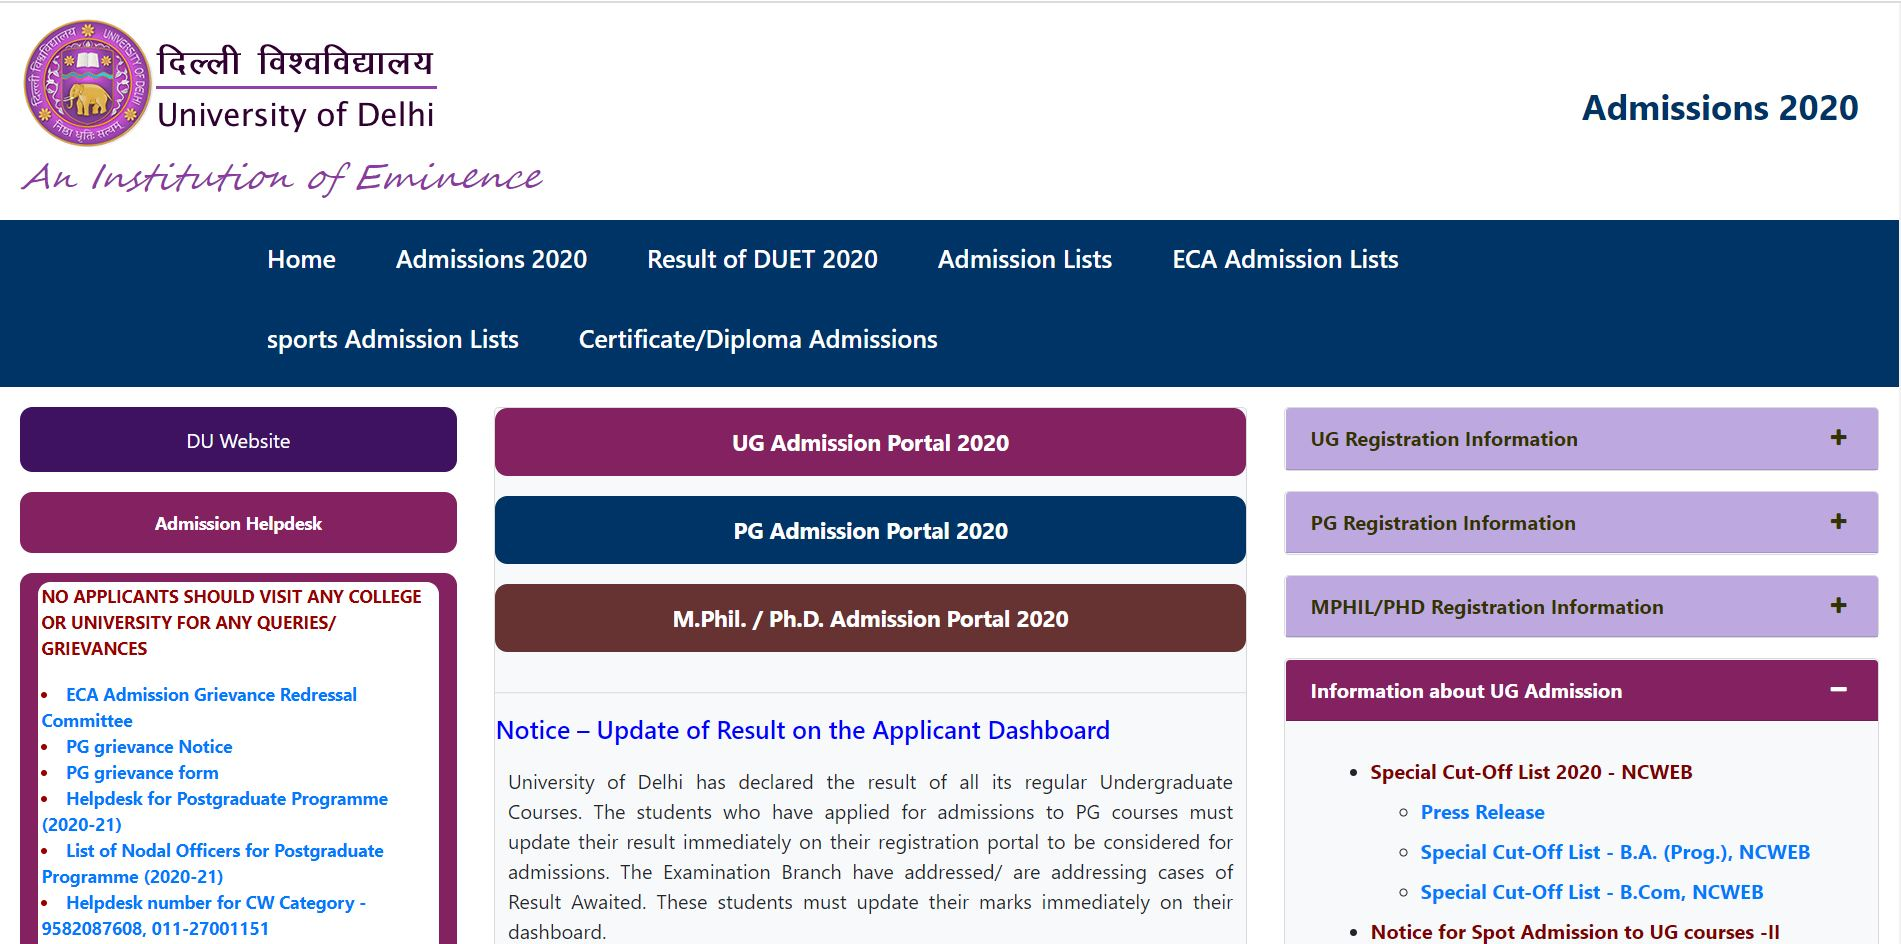 DU NCWEB 2020 Special Cut-off List Released for B.Com and B.A Program; Check Merit List @du.ac.in